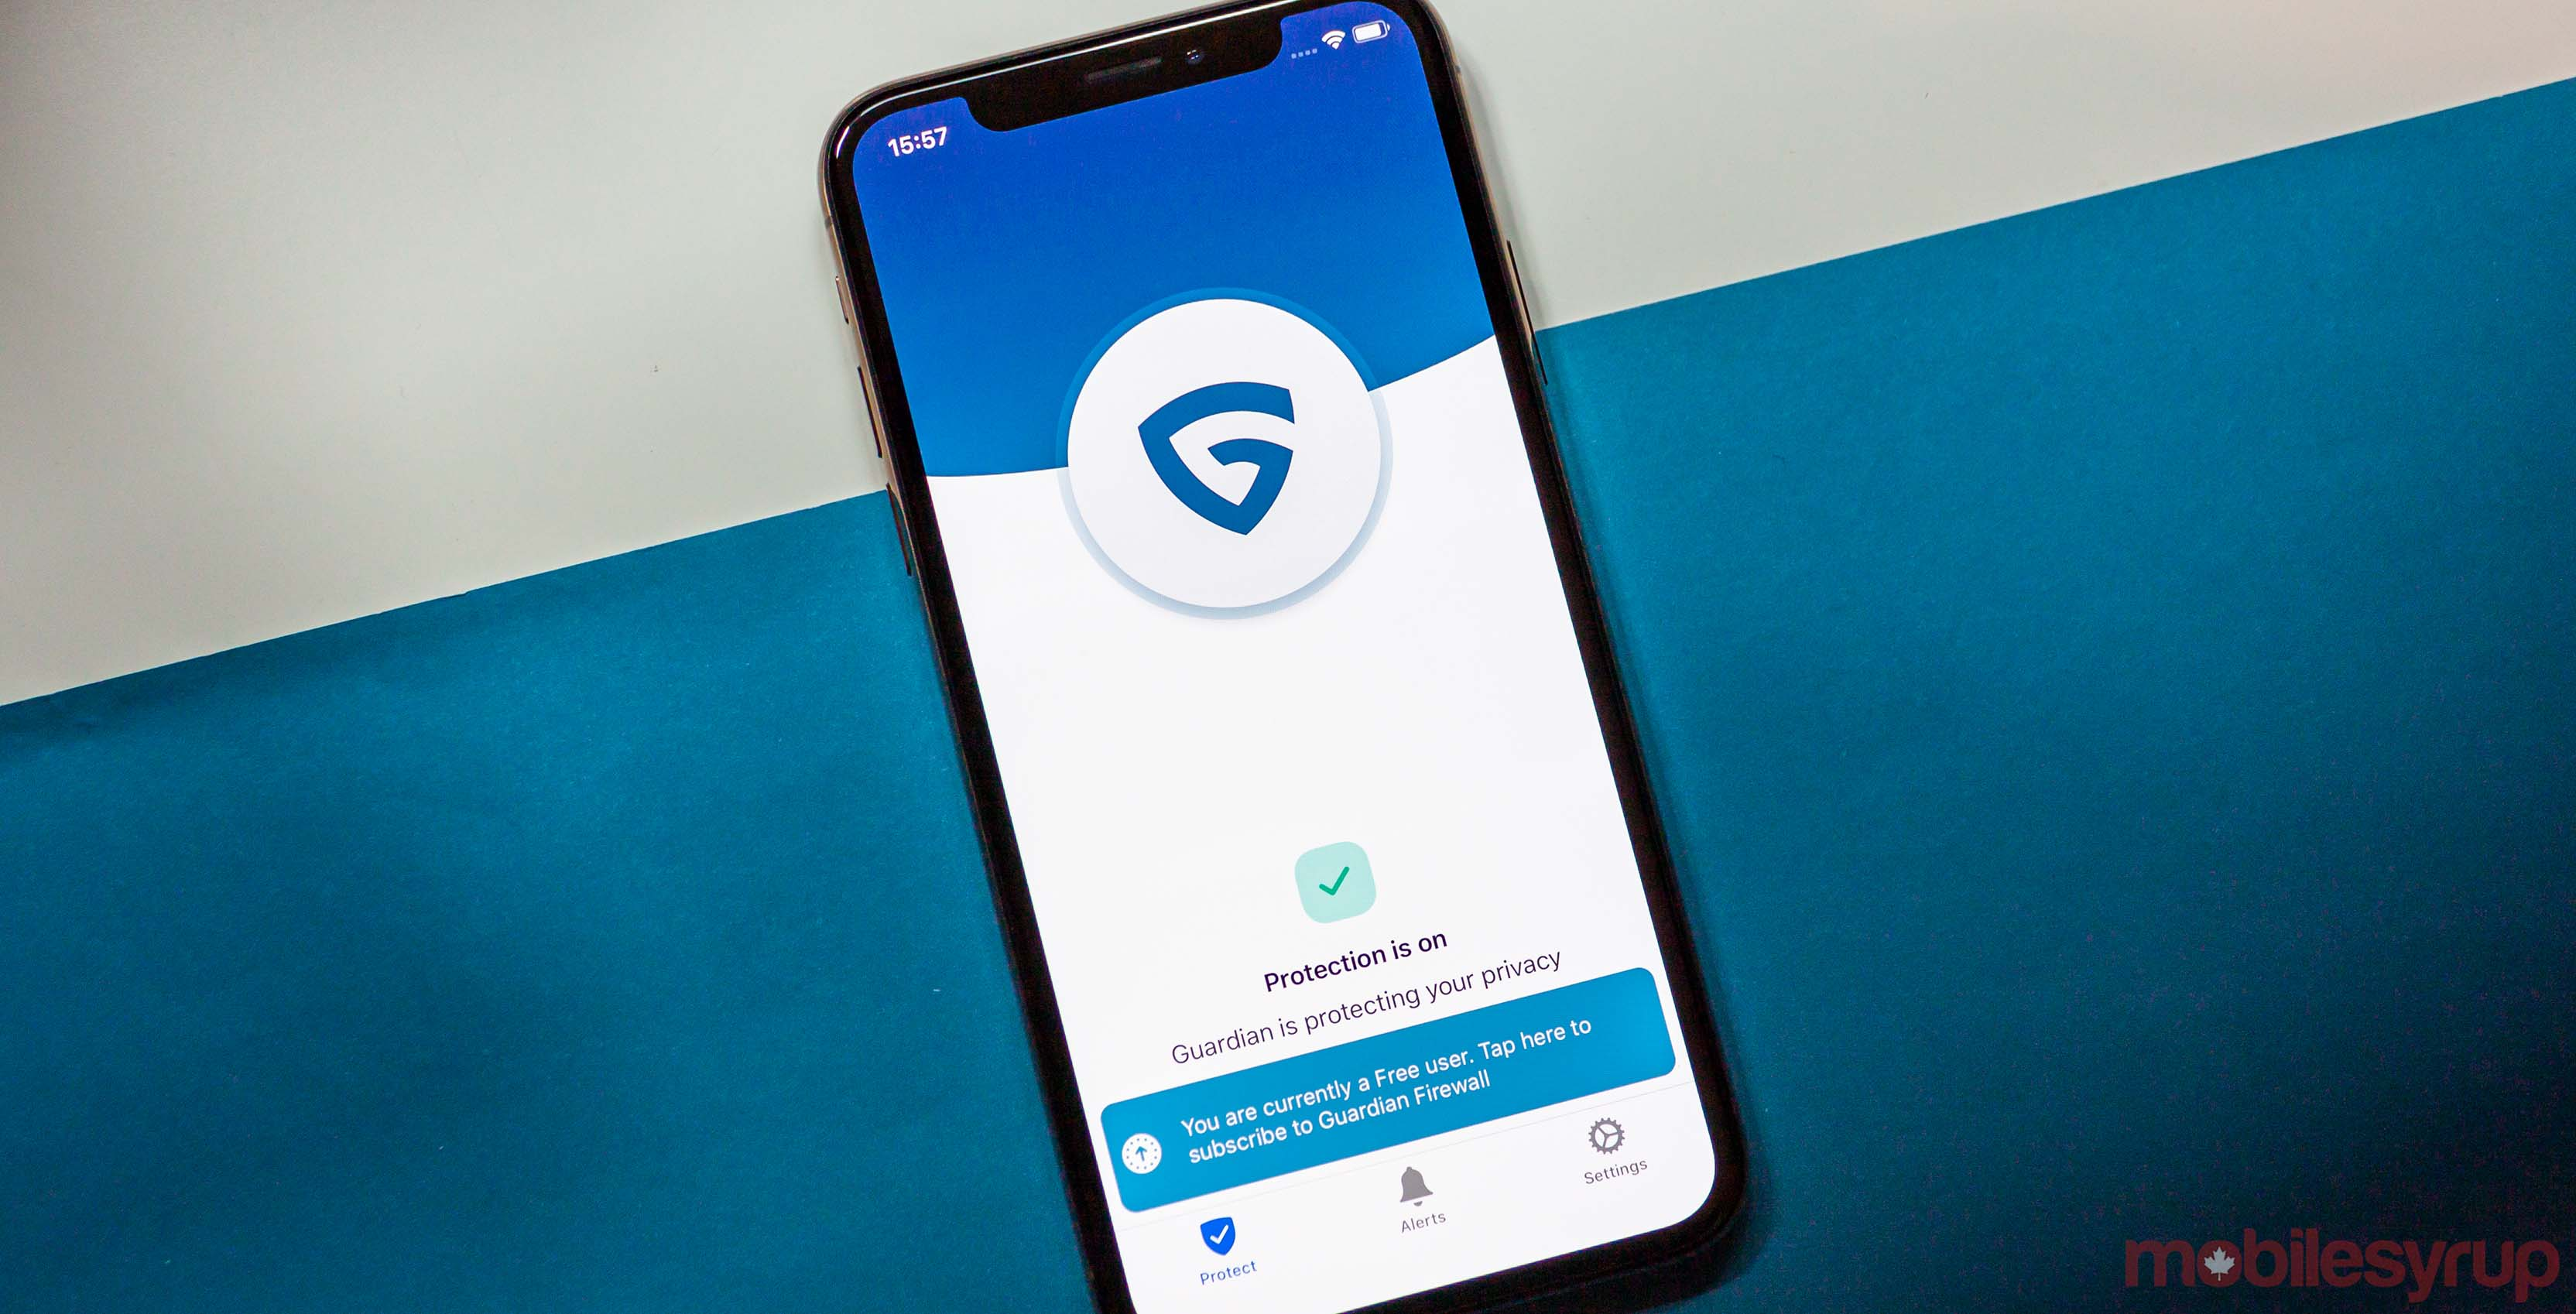 Guardian Firewall blocks trackers on your iPhone without breaking apps